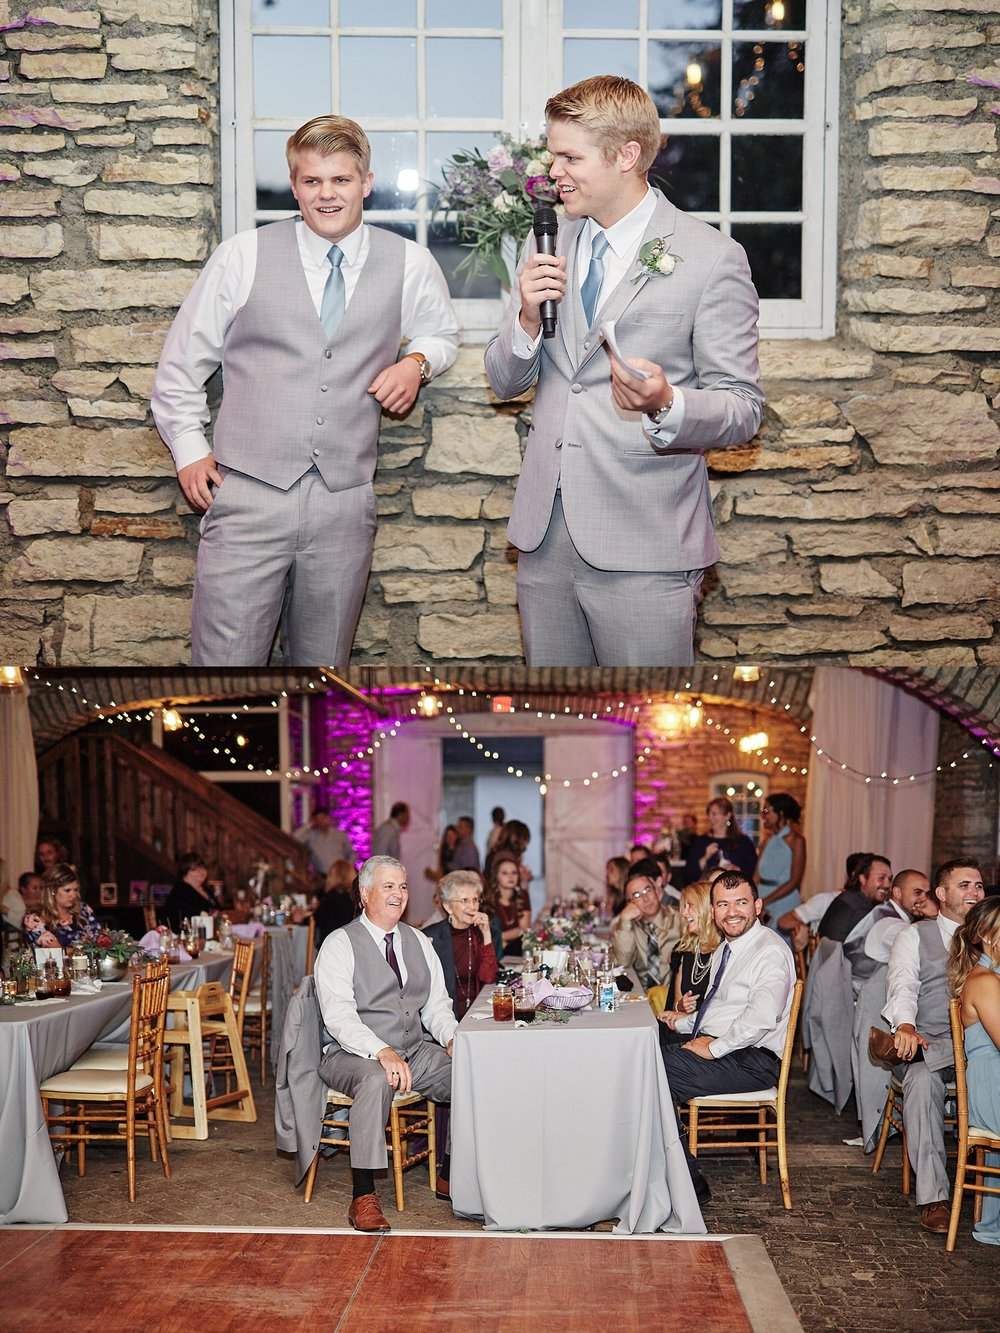 Maywood-Stone-Barn-Wedding-Rochester-Minnesota-Perry-James-Photo_0683.jpg